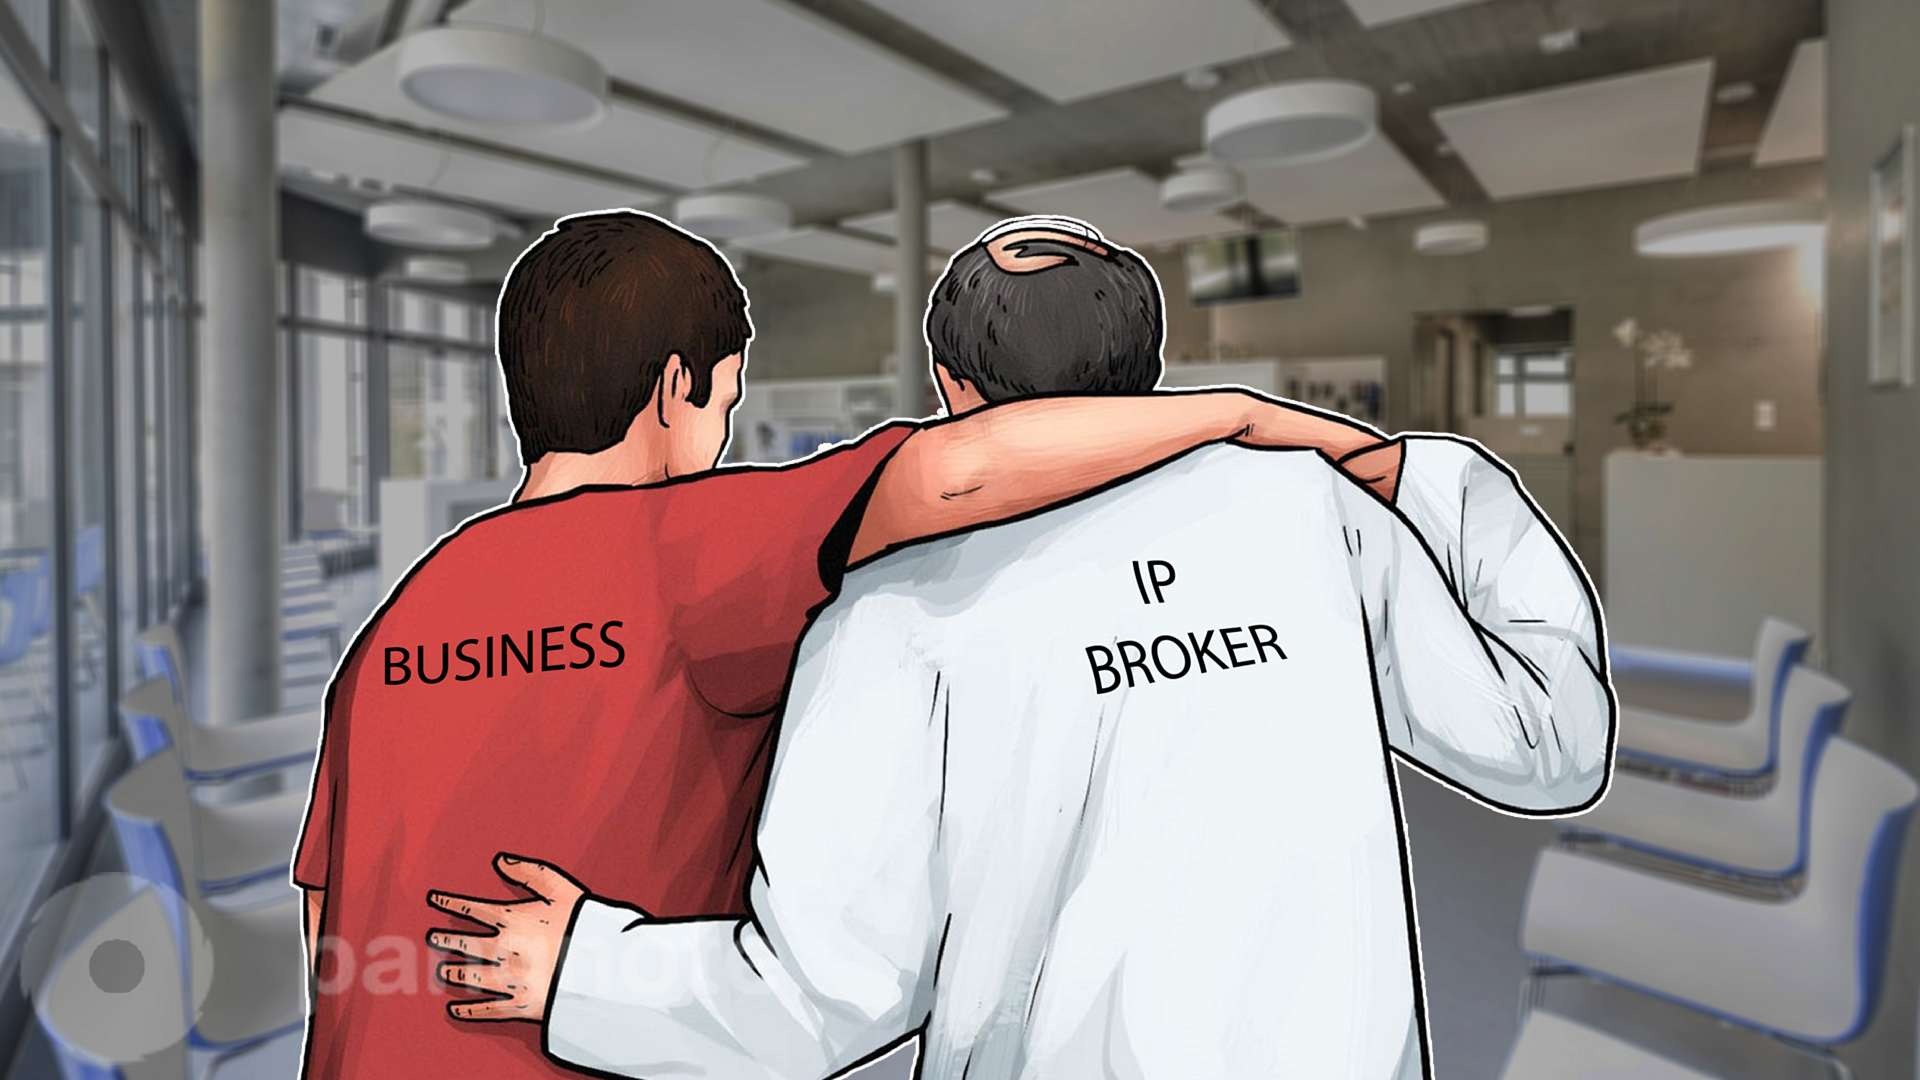 IP Broker: how can he help your business?